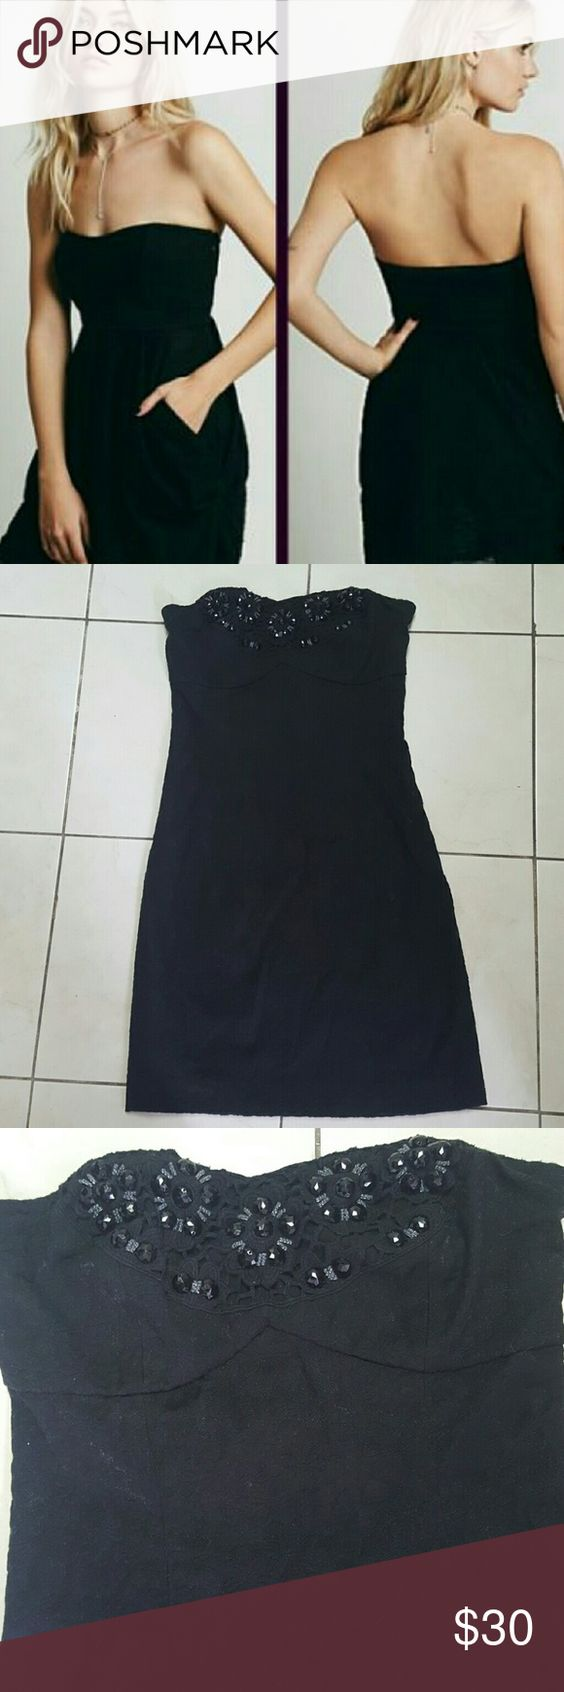 """Free People black strapless bodycon dress #1 NWOT Excellent condition black bodycon dress Beading at the Chest area Side zipper Mocked back Faint metellic shimmer  Measurements: Chest 13""""; Waist 12.5""""; Length 26""""  Material: 30% Nylon; 67% Cotton; 3% Spandex Free People Dresses Strapless"""